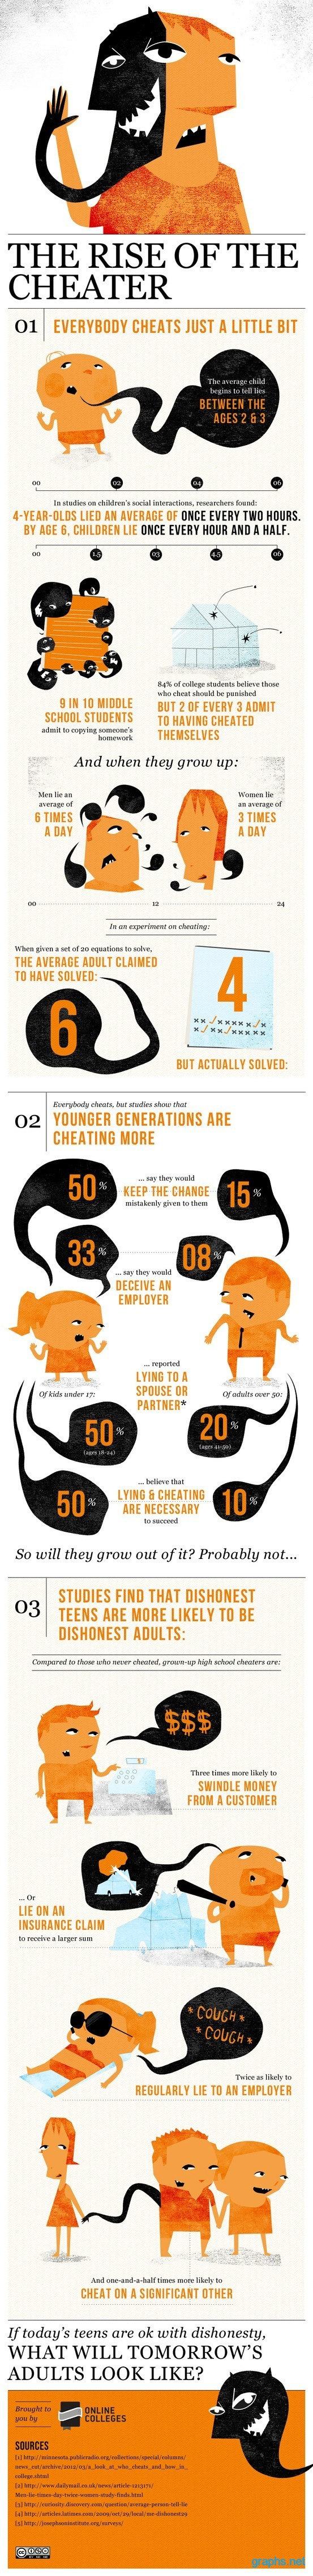 Facts About Cheating